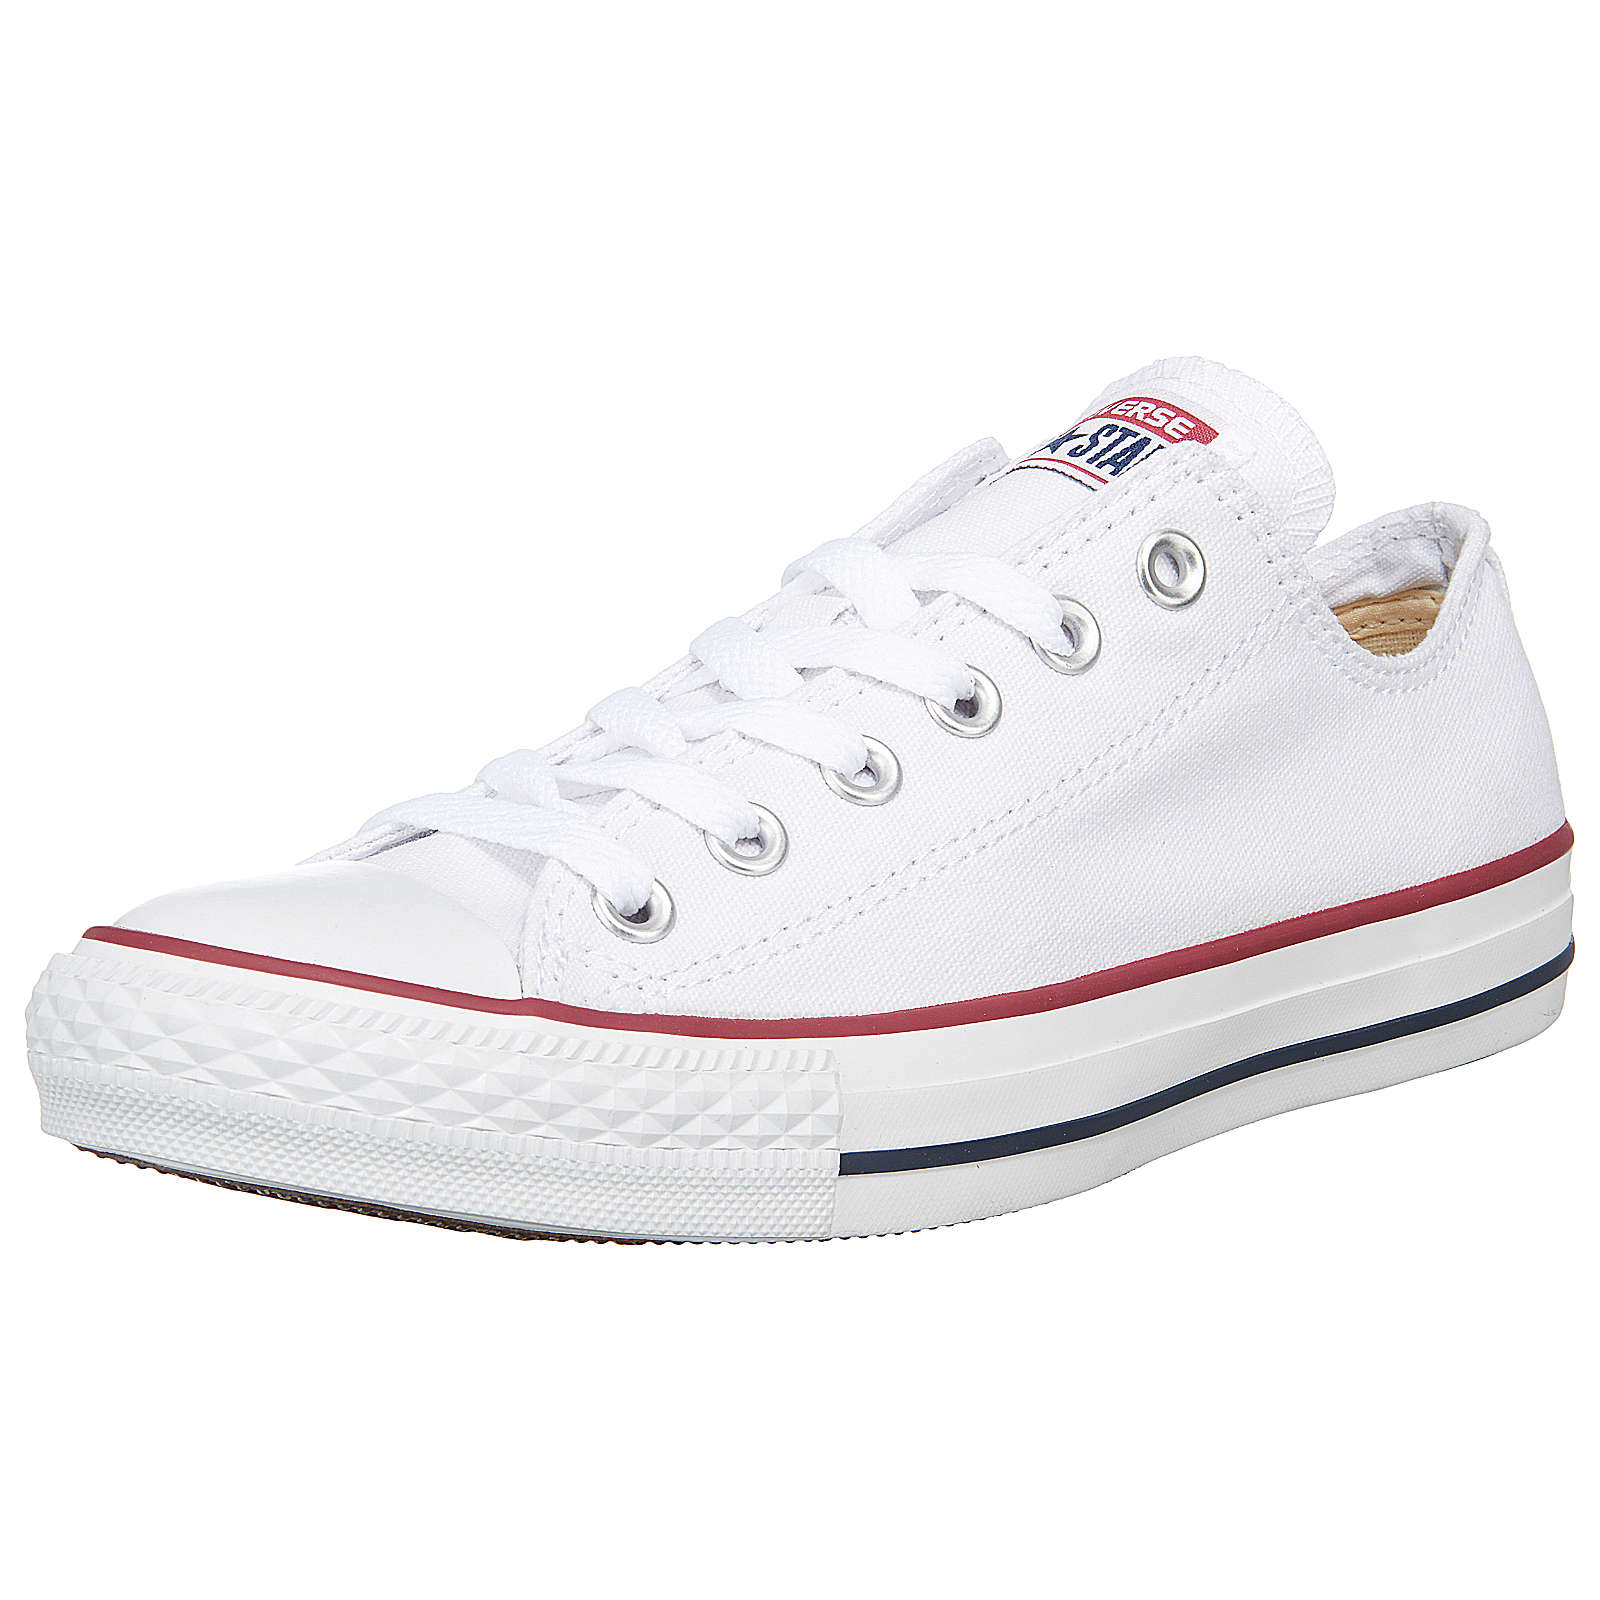 CONVERSE Chuck Taylor All Star Ox Sneakers Low weiß Gr. 36